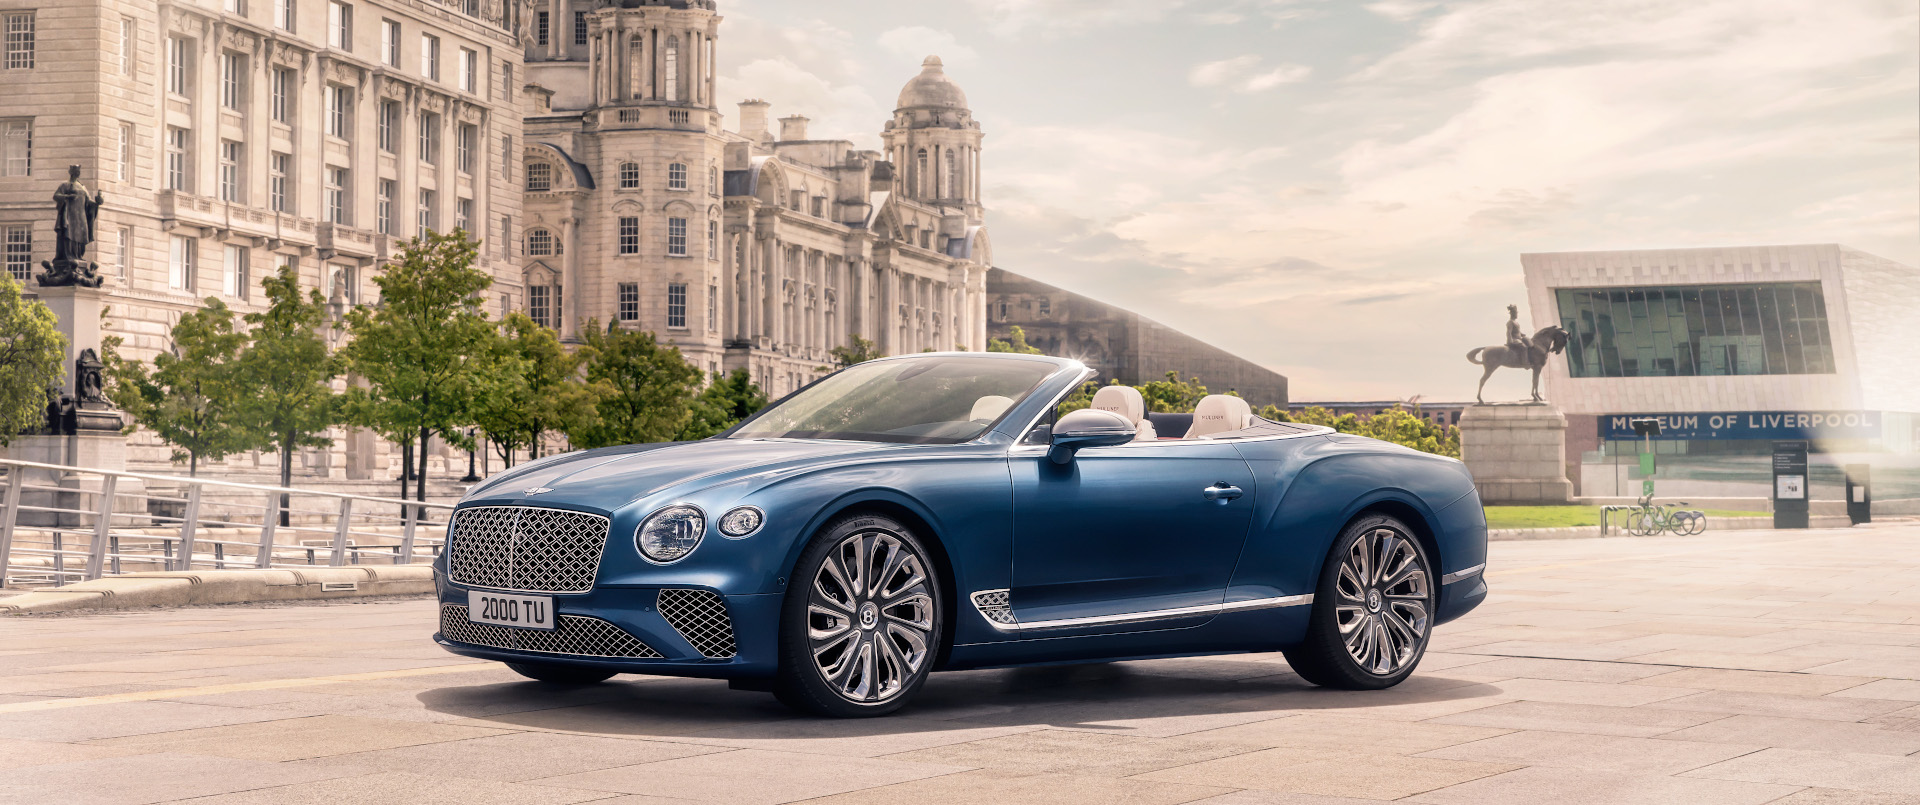 The Bentley Continental Gt Convertible Bentley Motors